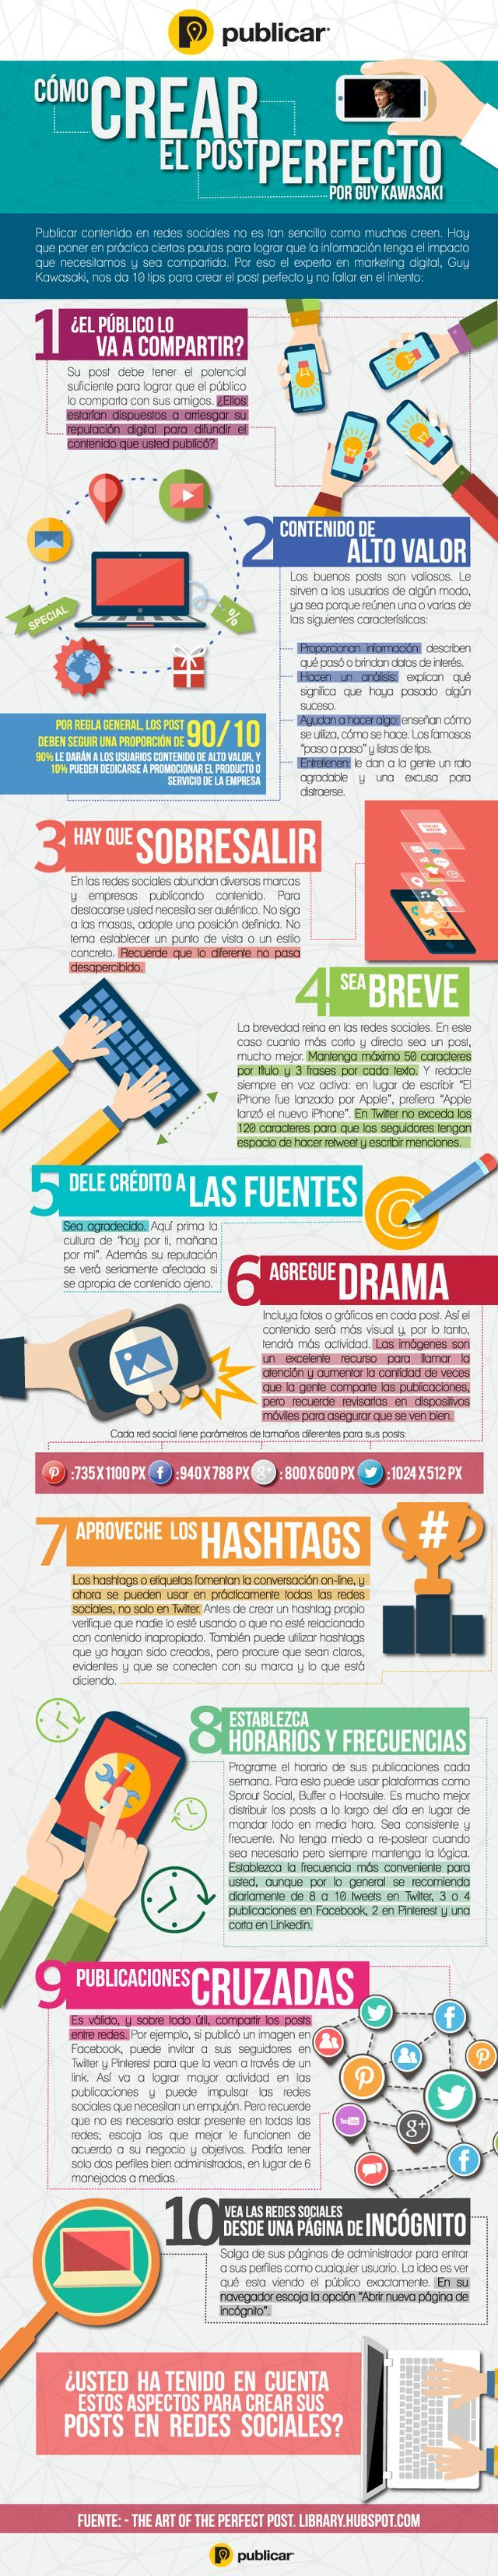 crear el post perfecto